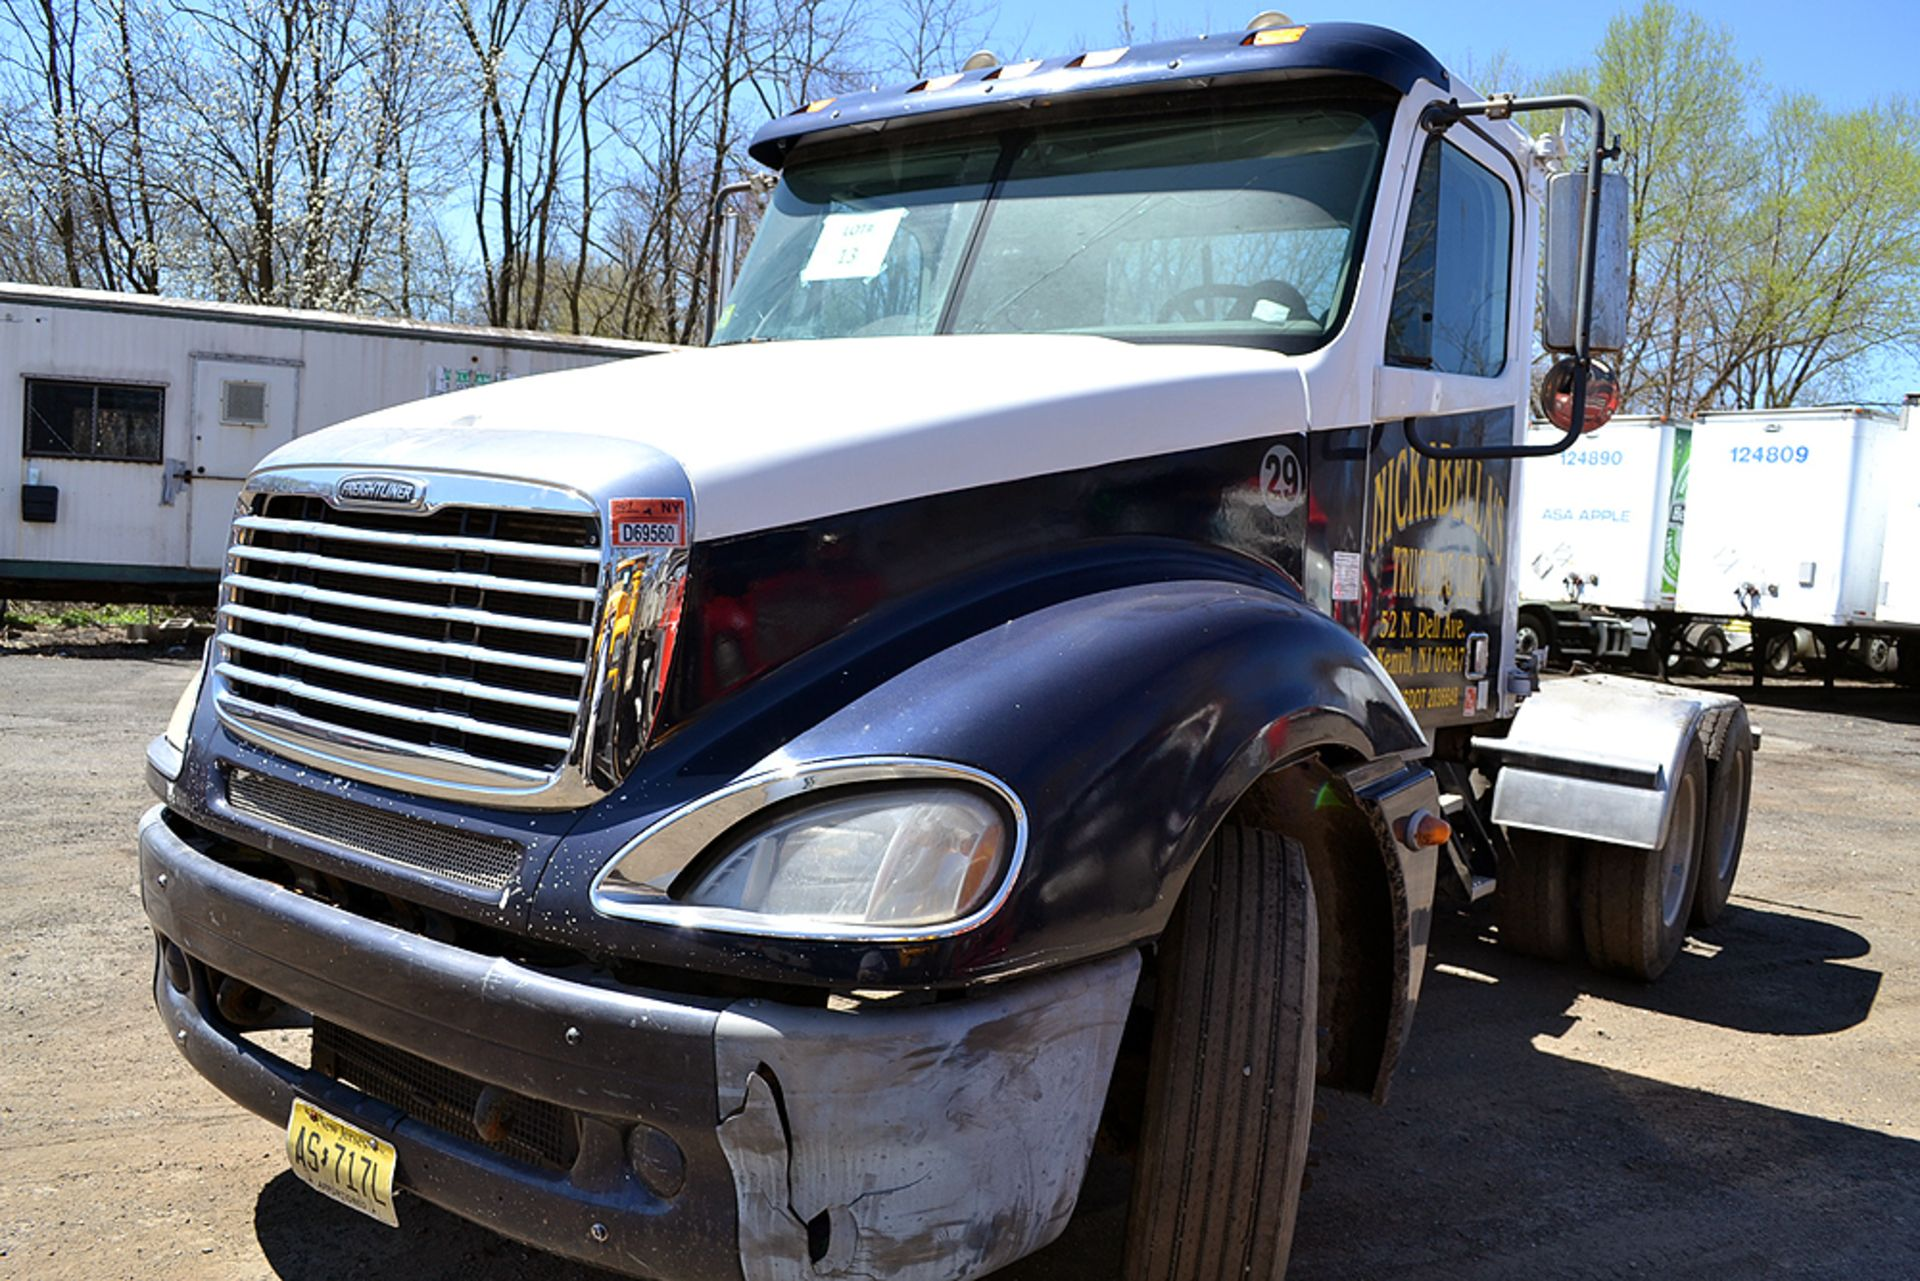 Lot 13 - 2007 Freightliner Columbia 120 Day Cab, Tandem Axle, Truck Tractor